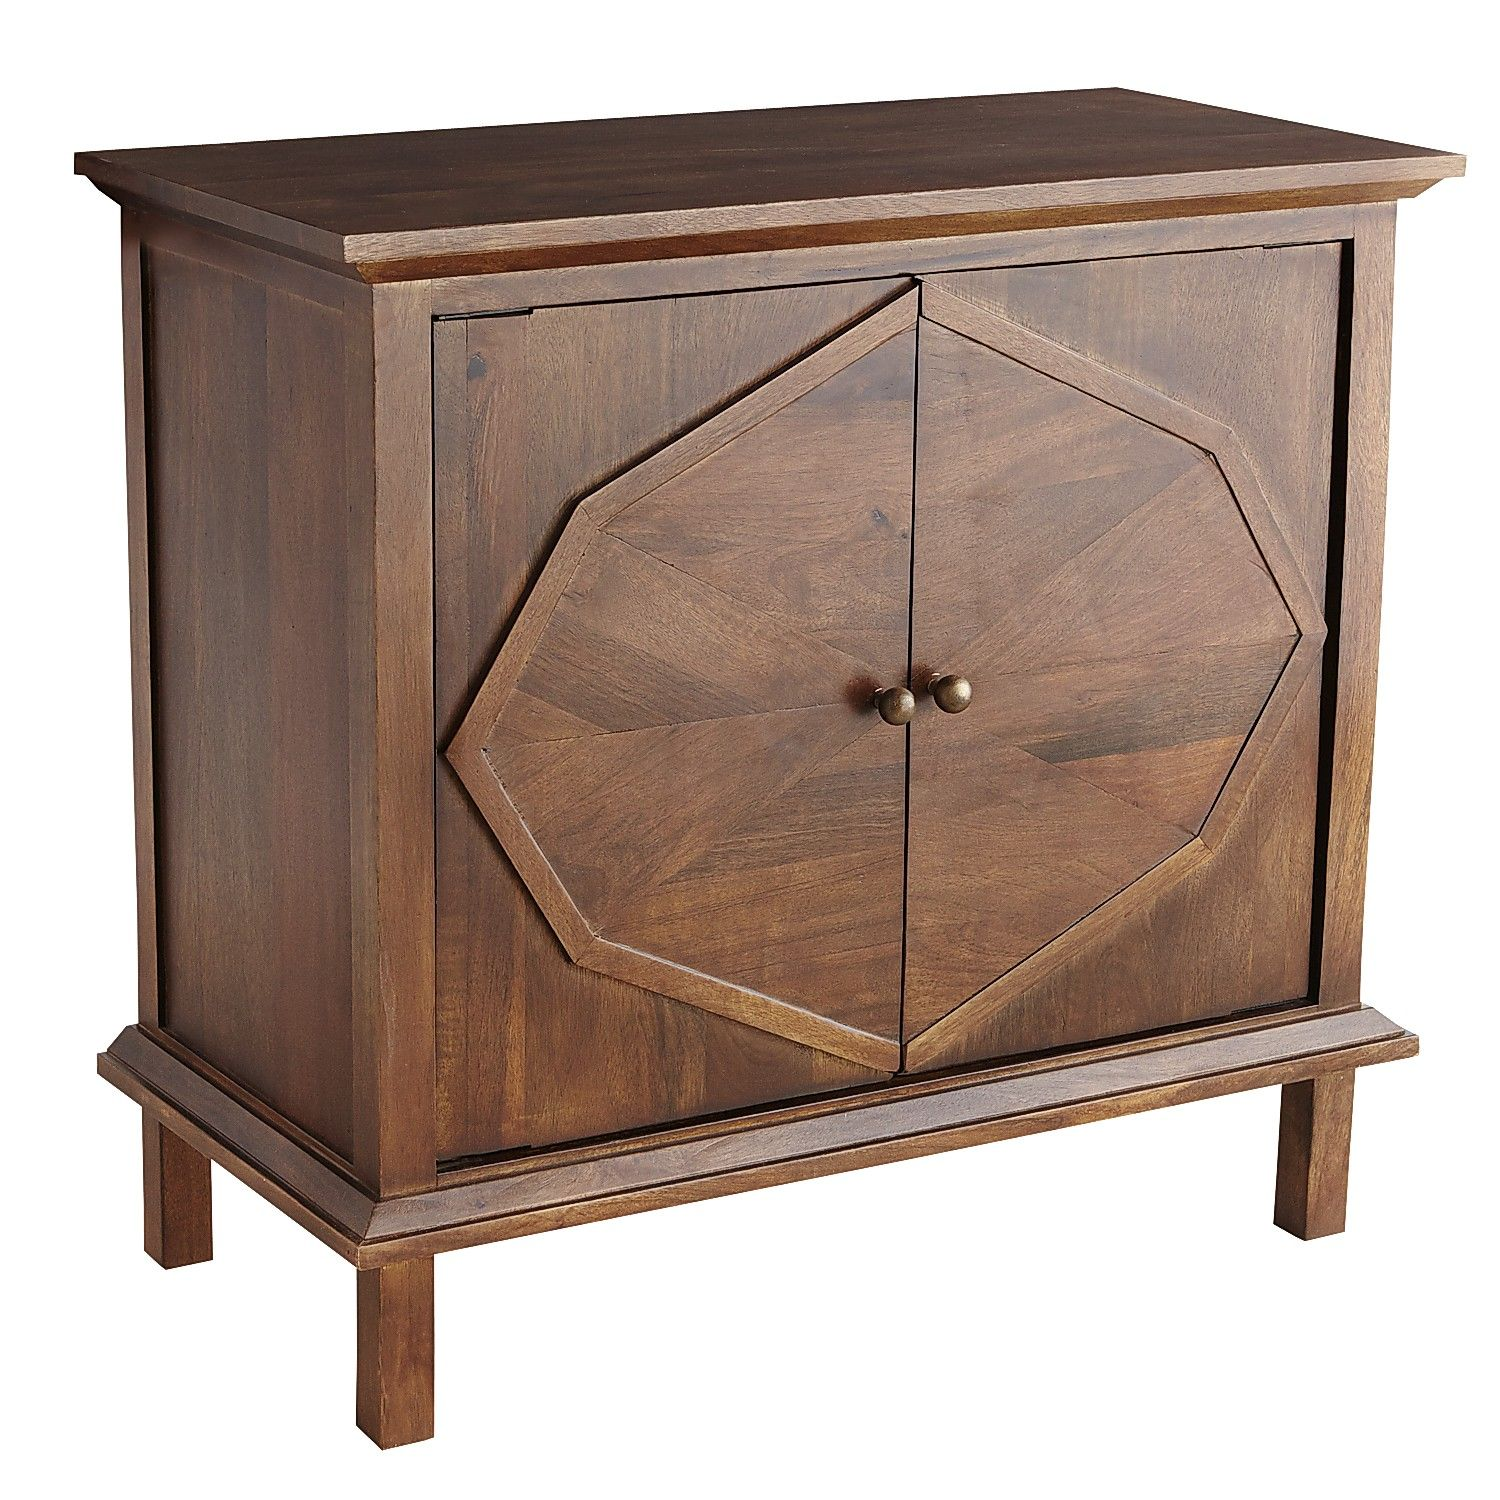 Storage Cabinets For Living Room: Brown Dimitri Cabinet - Iron